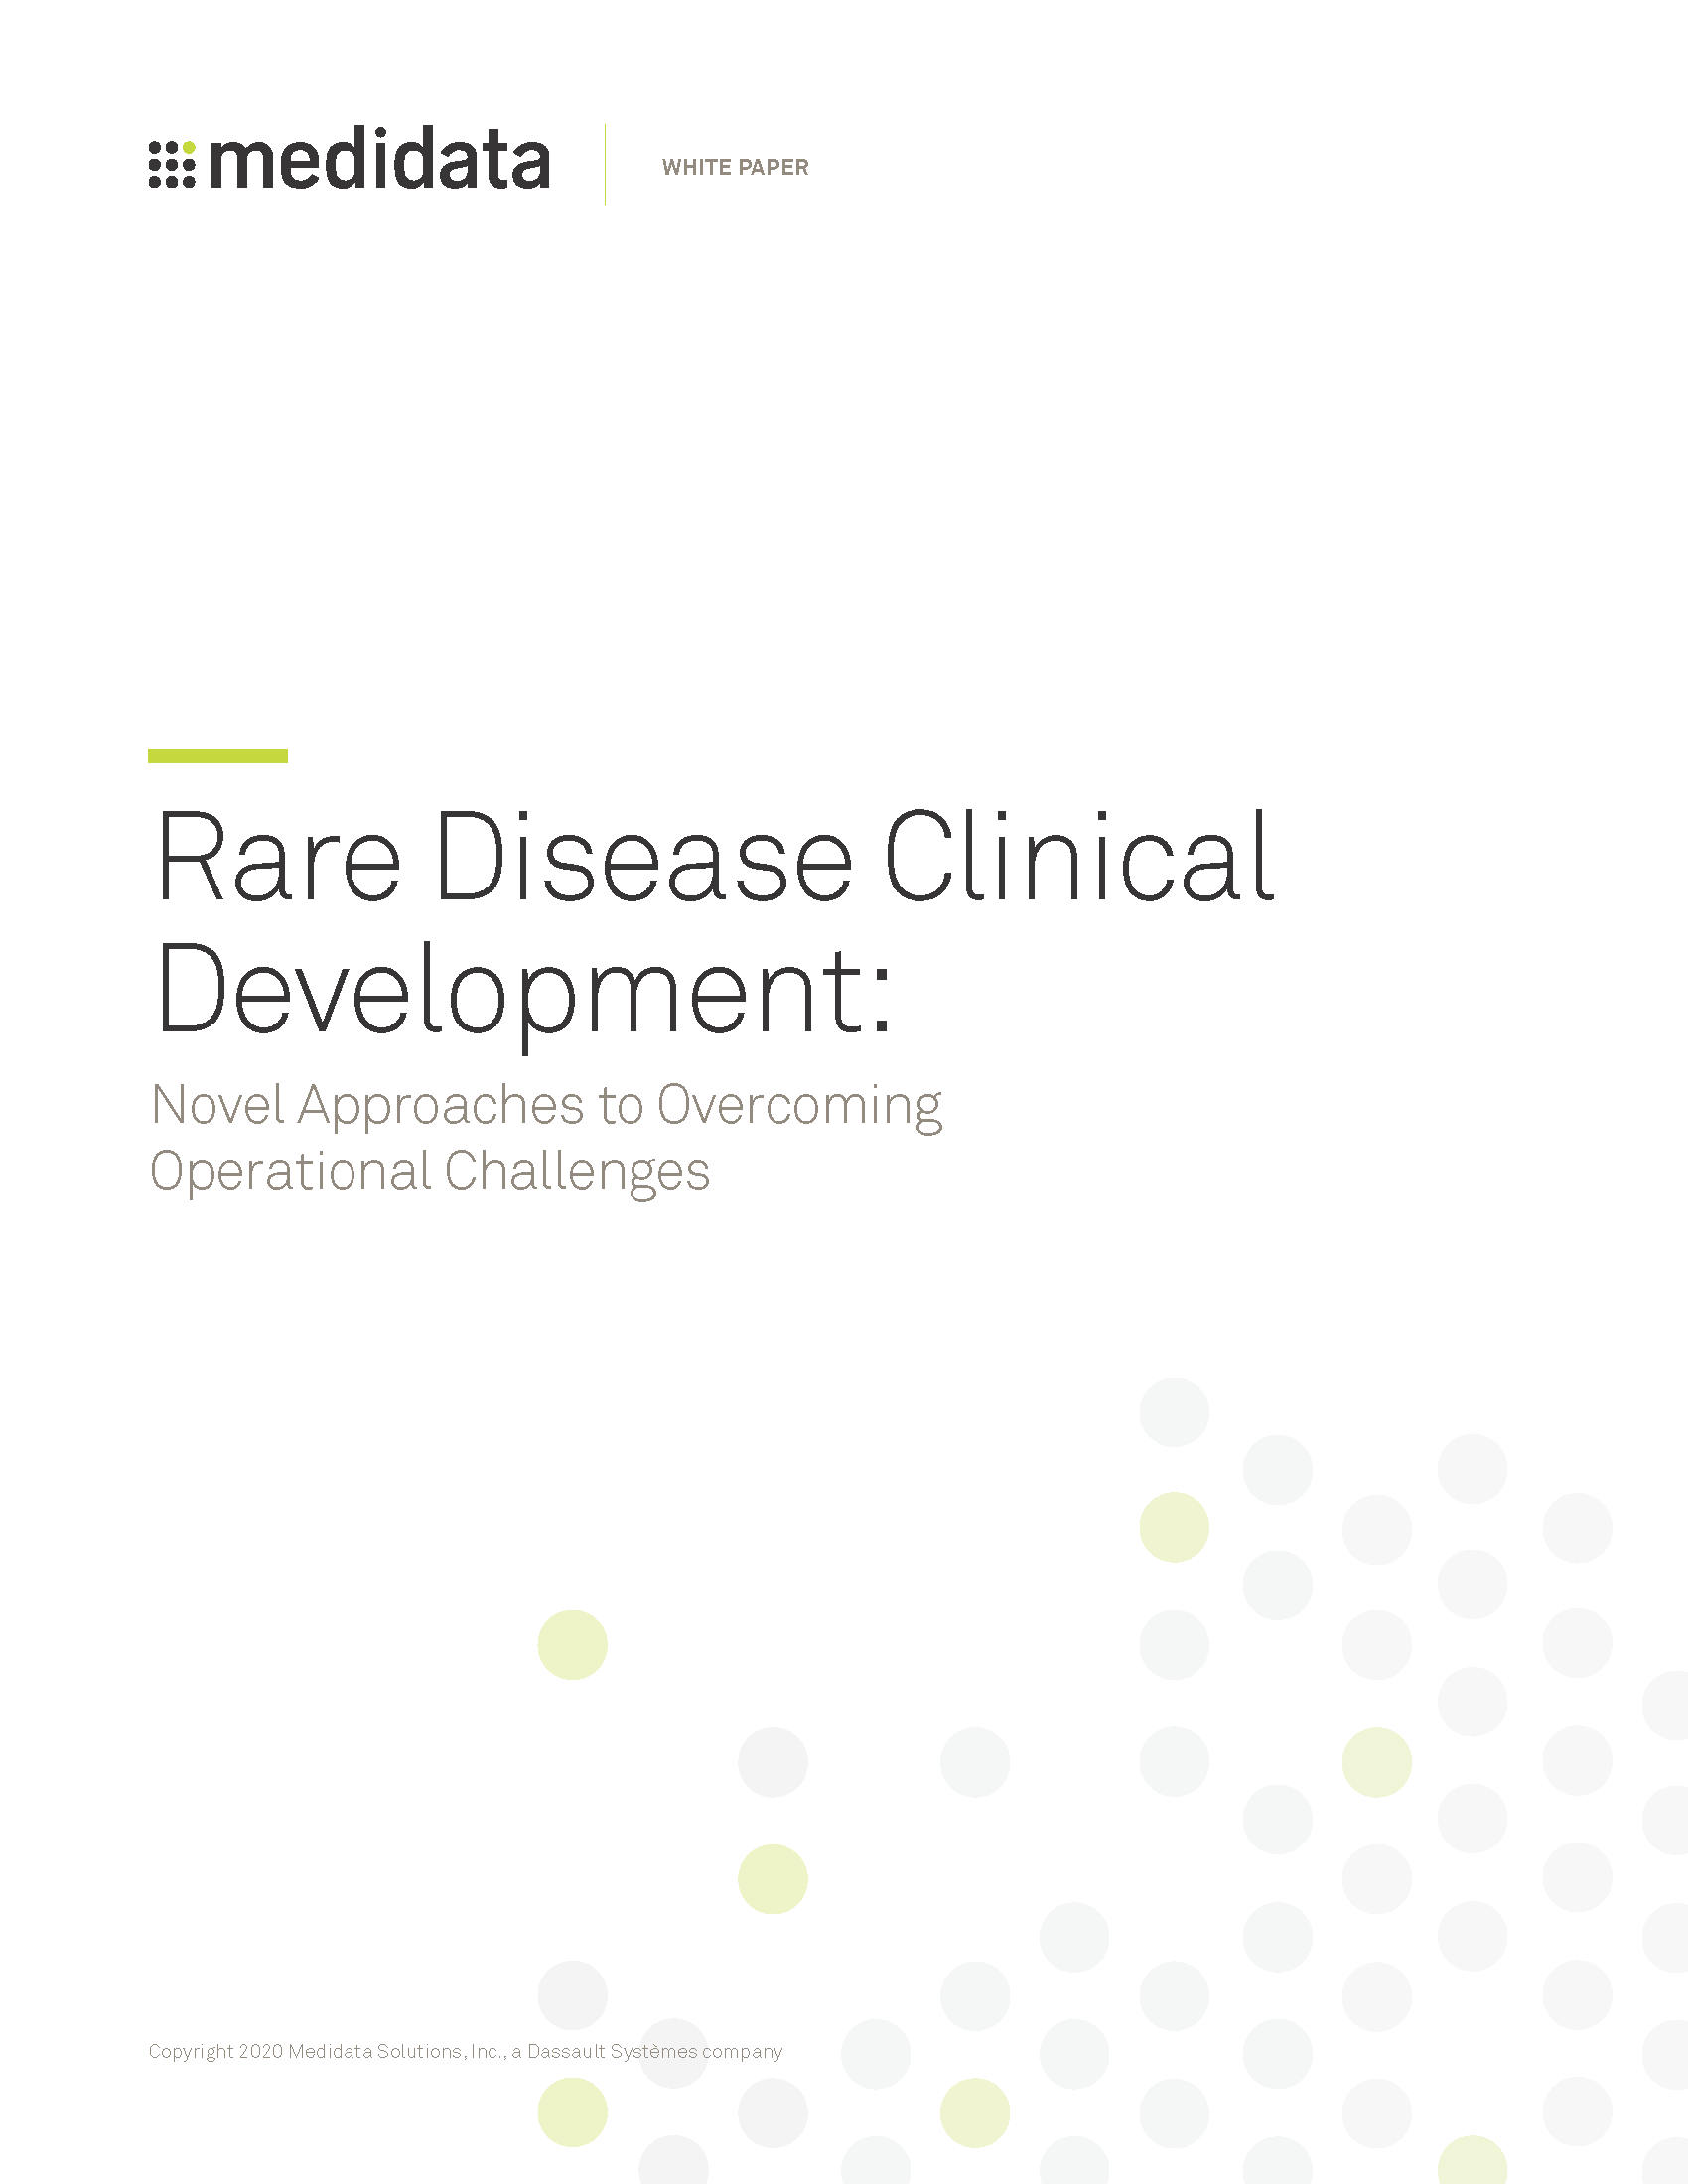 Rare Disease Clinical Development: Novel Approaches to Overcoming Operational Challenges